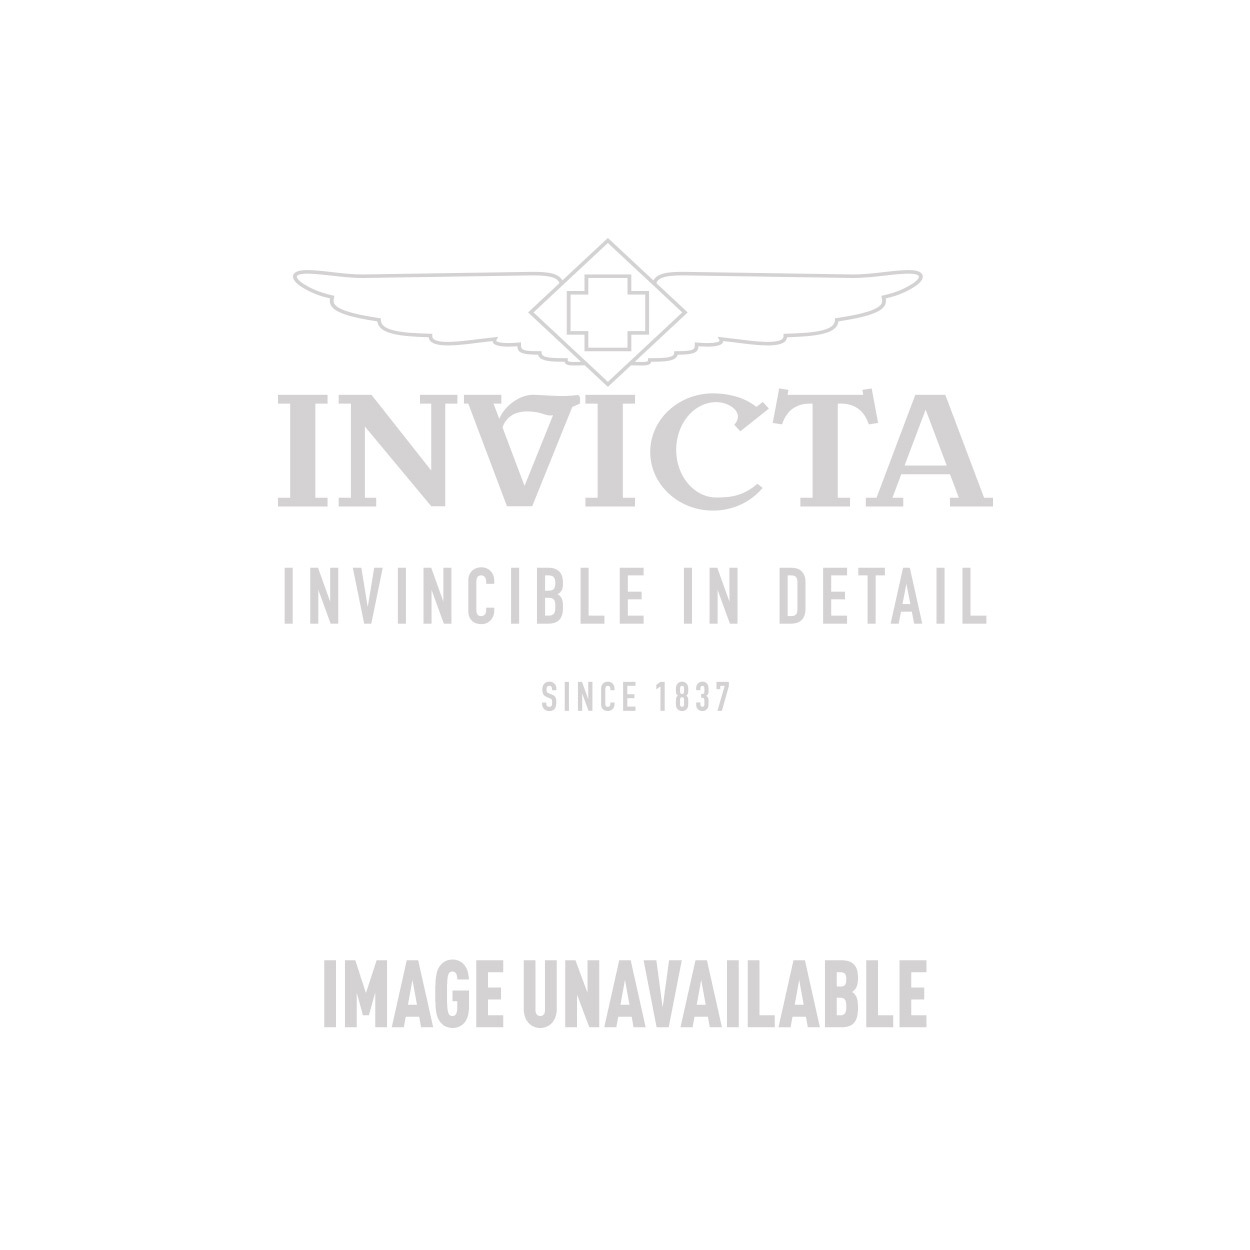 Invicta Sea Spider Swiss Movement Quartz Watch - Stainless Steel case with Steel, Black tone Stainless Steel, Polyurethane band - Model 1120